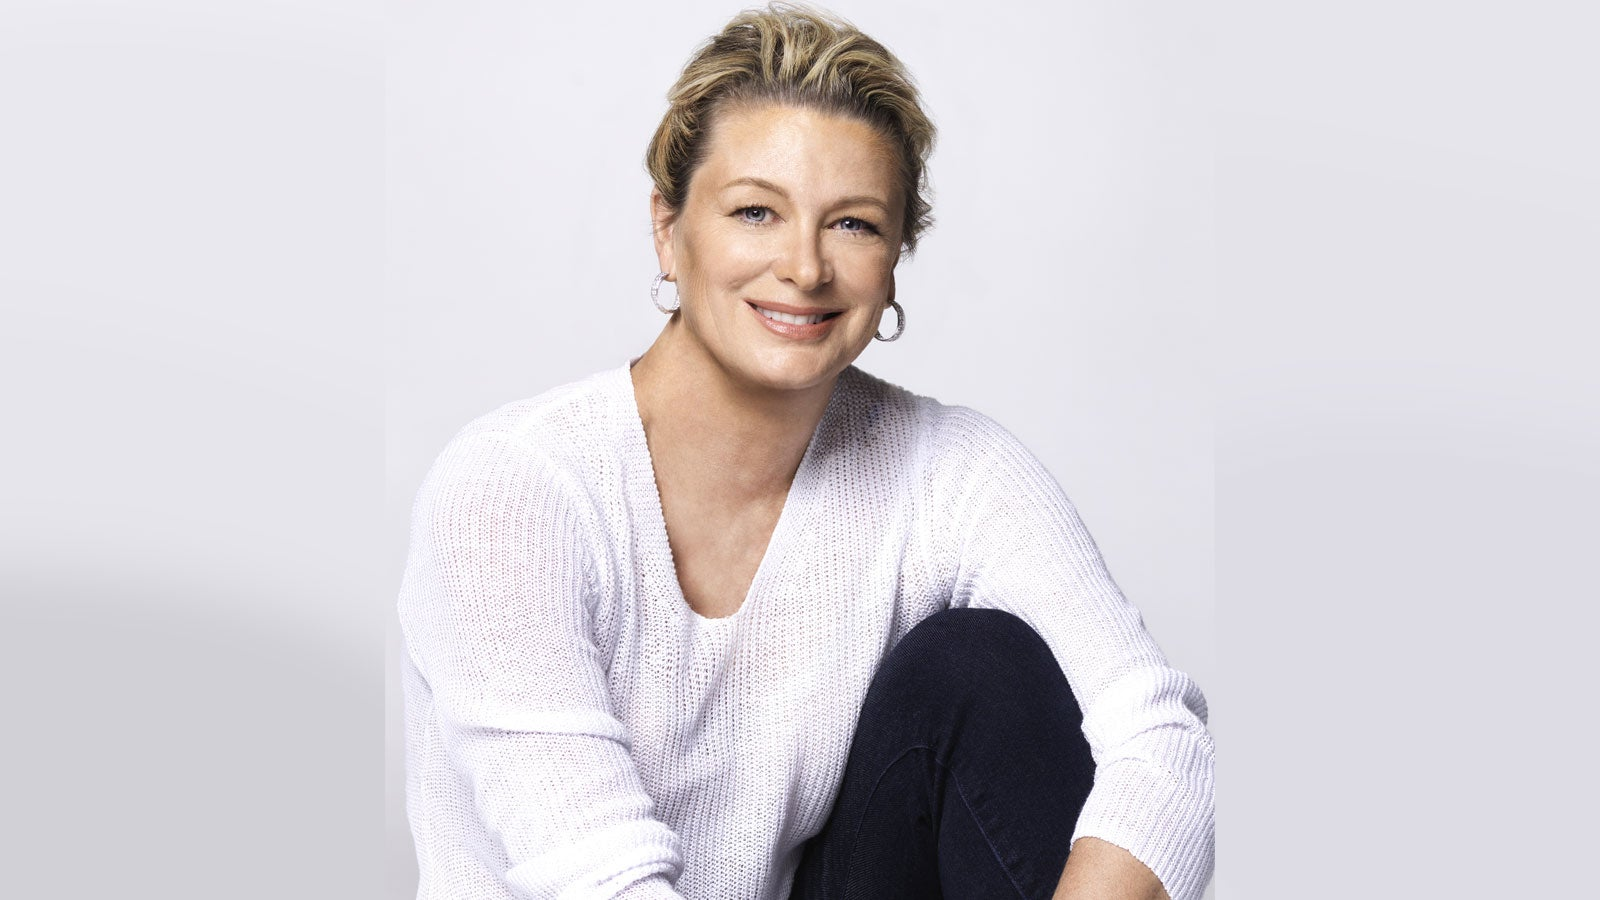 Kristin Hannah smiling wearing a white jumper in front of a white background